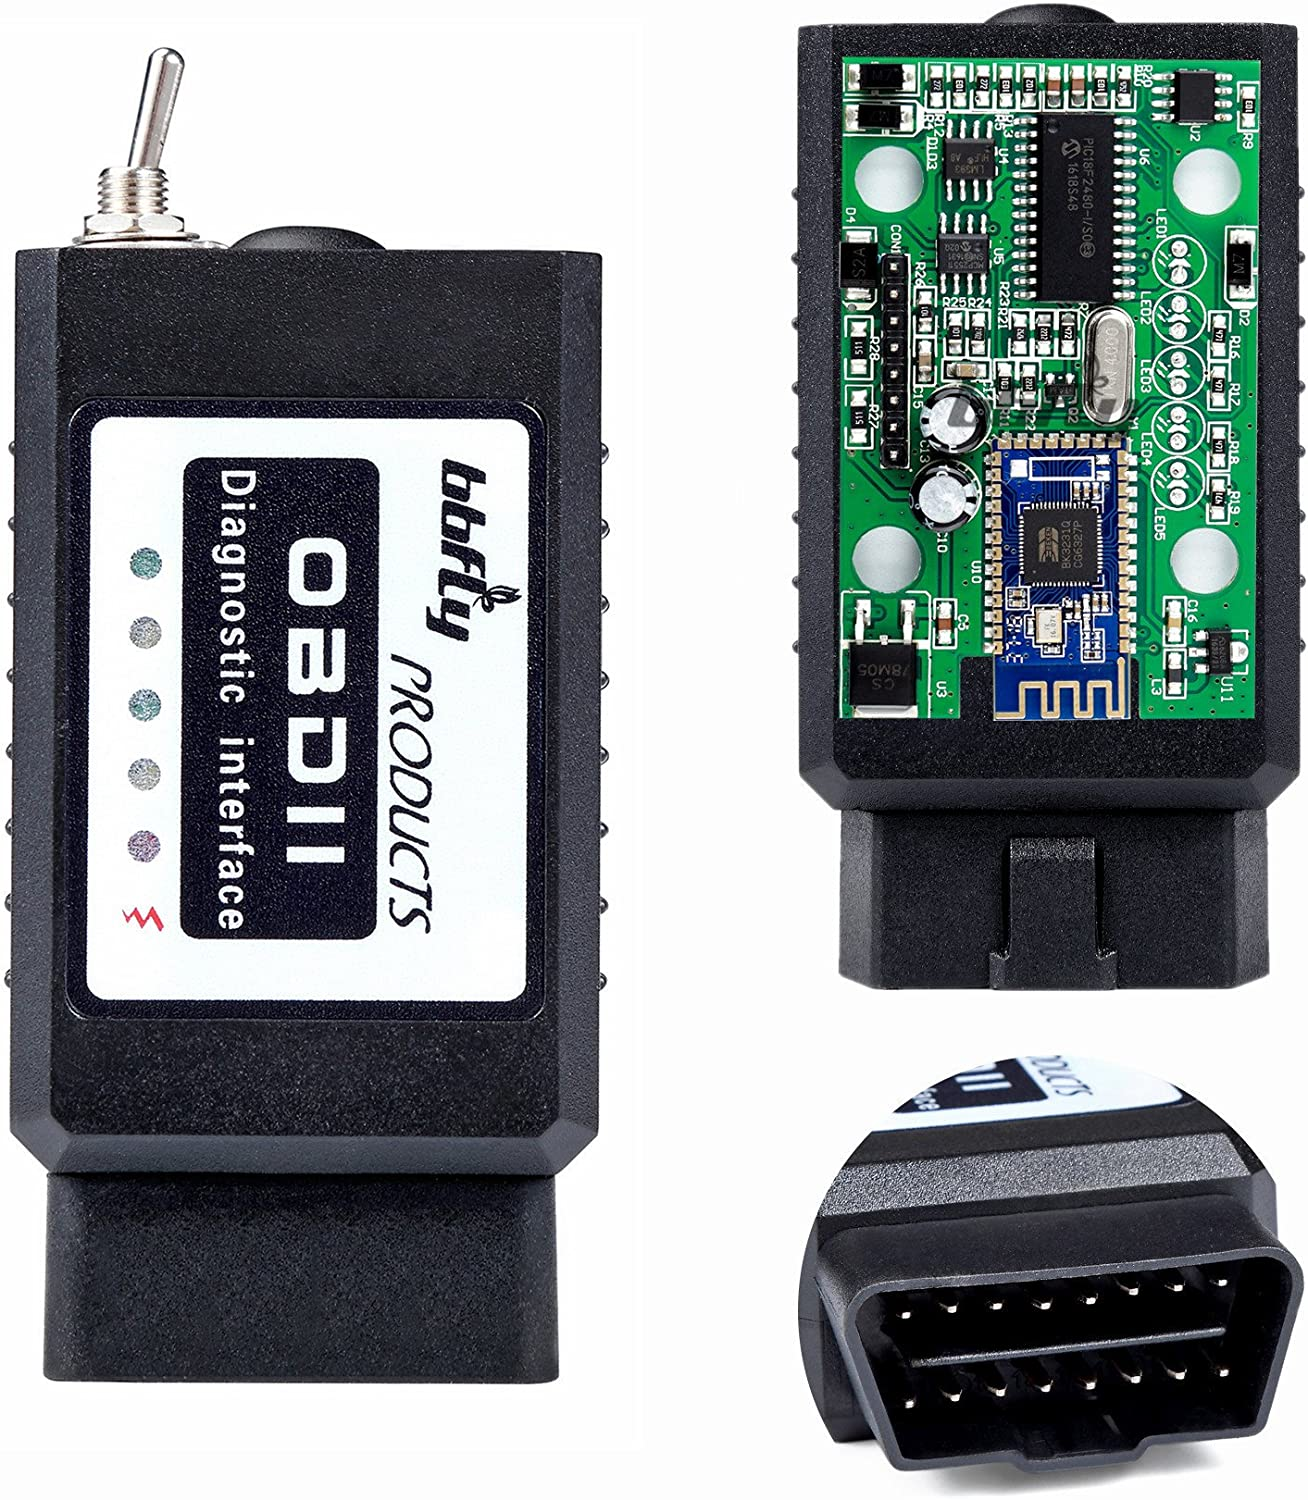 bbfly-BB77102 Bluetooth Modified Android OBD Scan Tool bbflyFORScan FOCCCUS OBD2 HS-CAN/MS-CAN